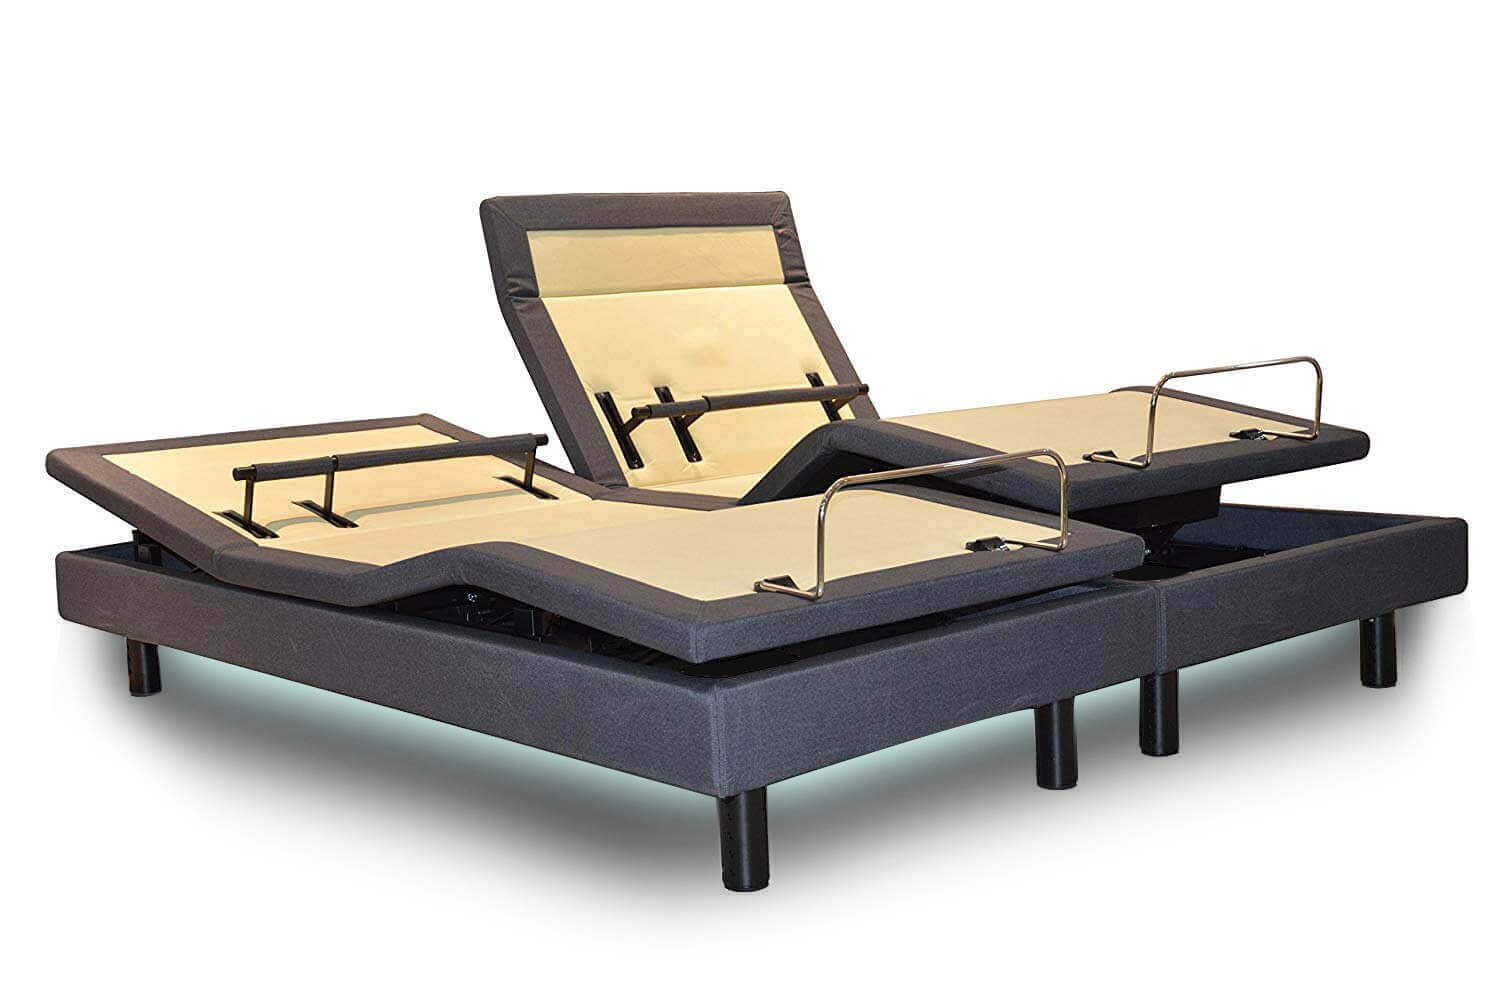 DynastyMattress New! DM9000s -Top of The Line Adjustable Bed Base-Wireless Remote-Quad Massage-Bluetooth- Head Tilt-Audio Music-Lumbar Support (Split King-Without Setup)